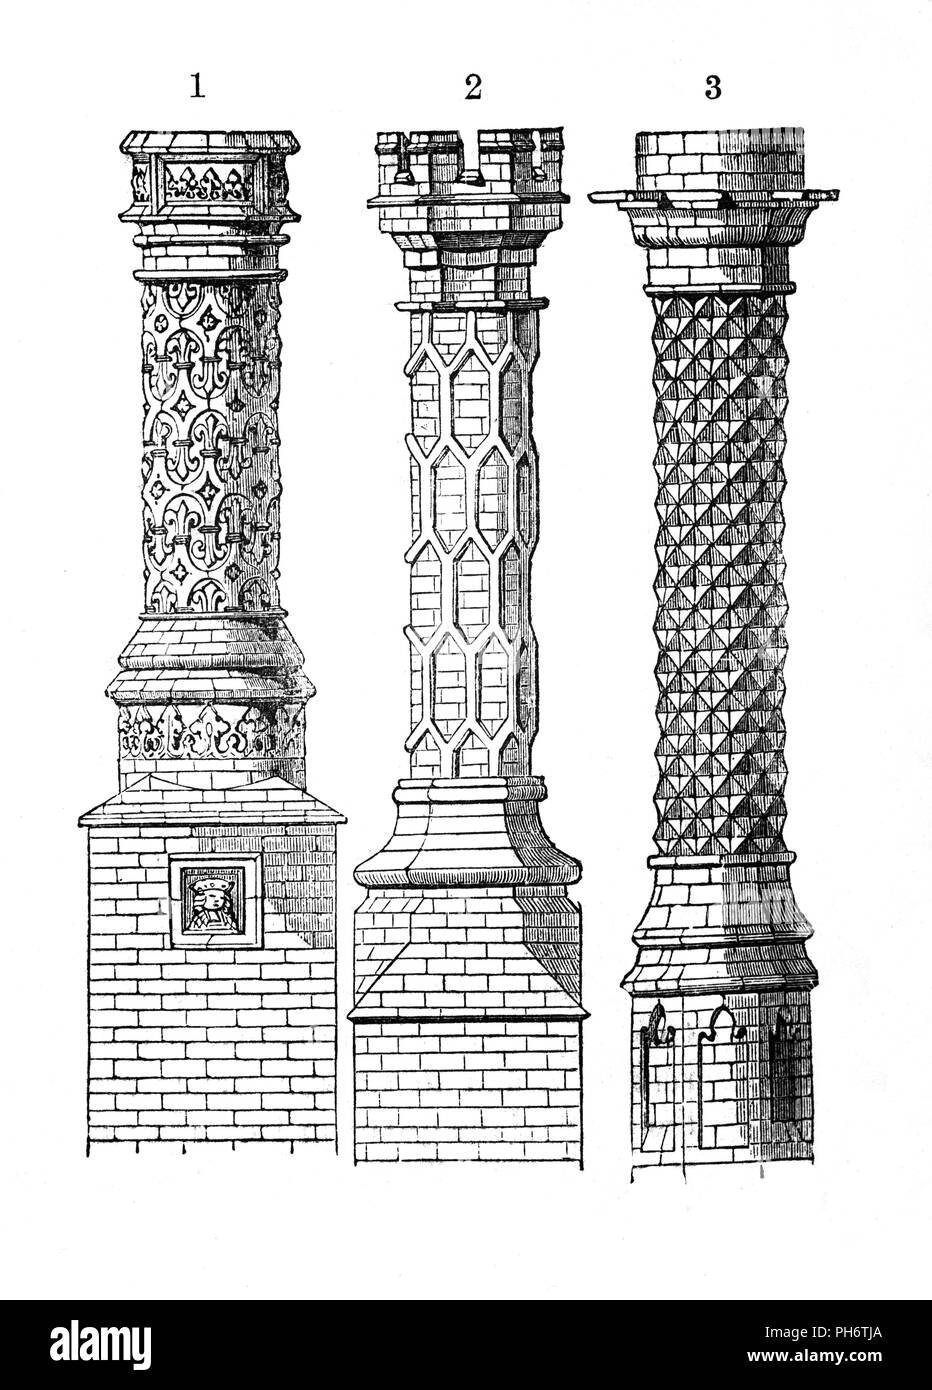 Examples of 16th Century, ornate and decorative Tudor brick chimneys. Number 1is East Barsham Manor; Number 2 is Hampton Court and number 3 is Eton College. - Stock Image